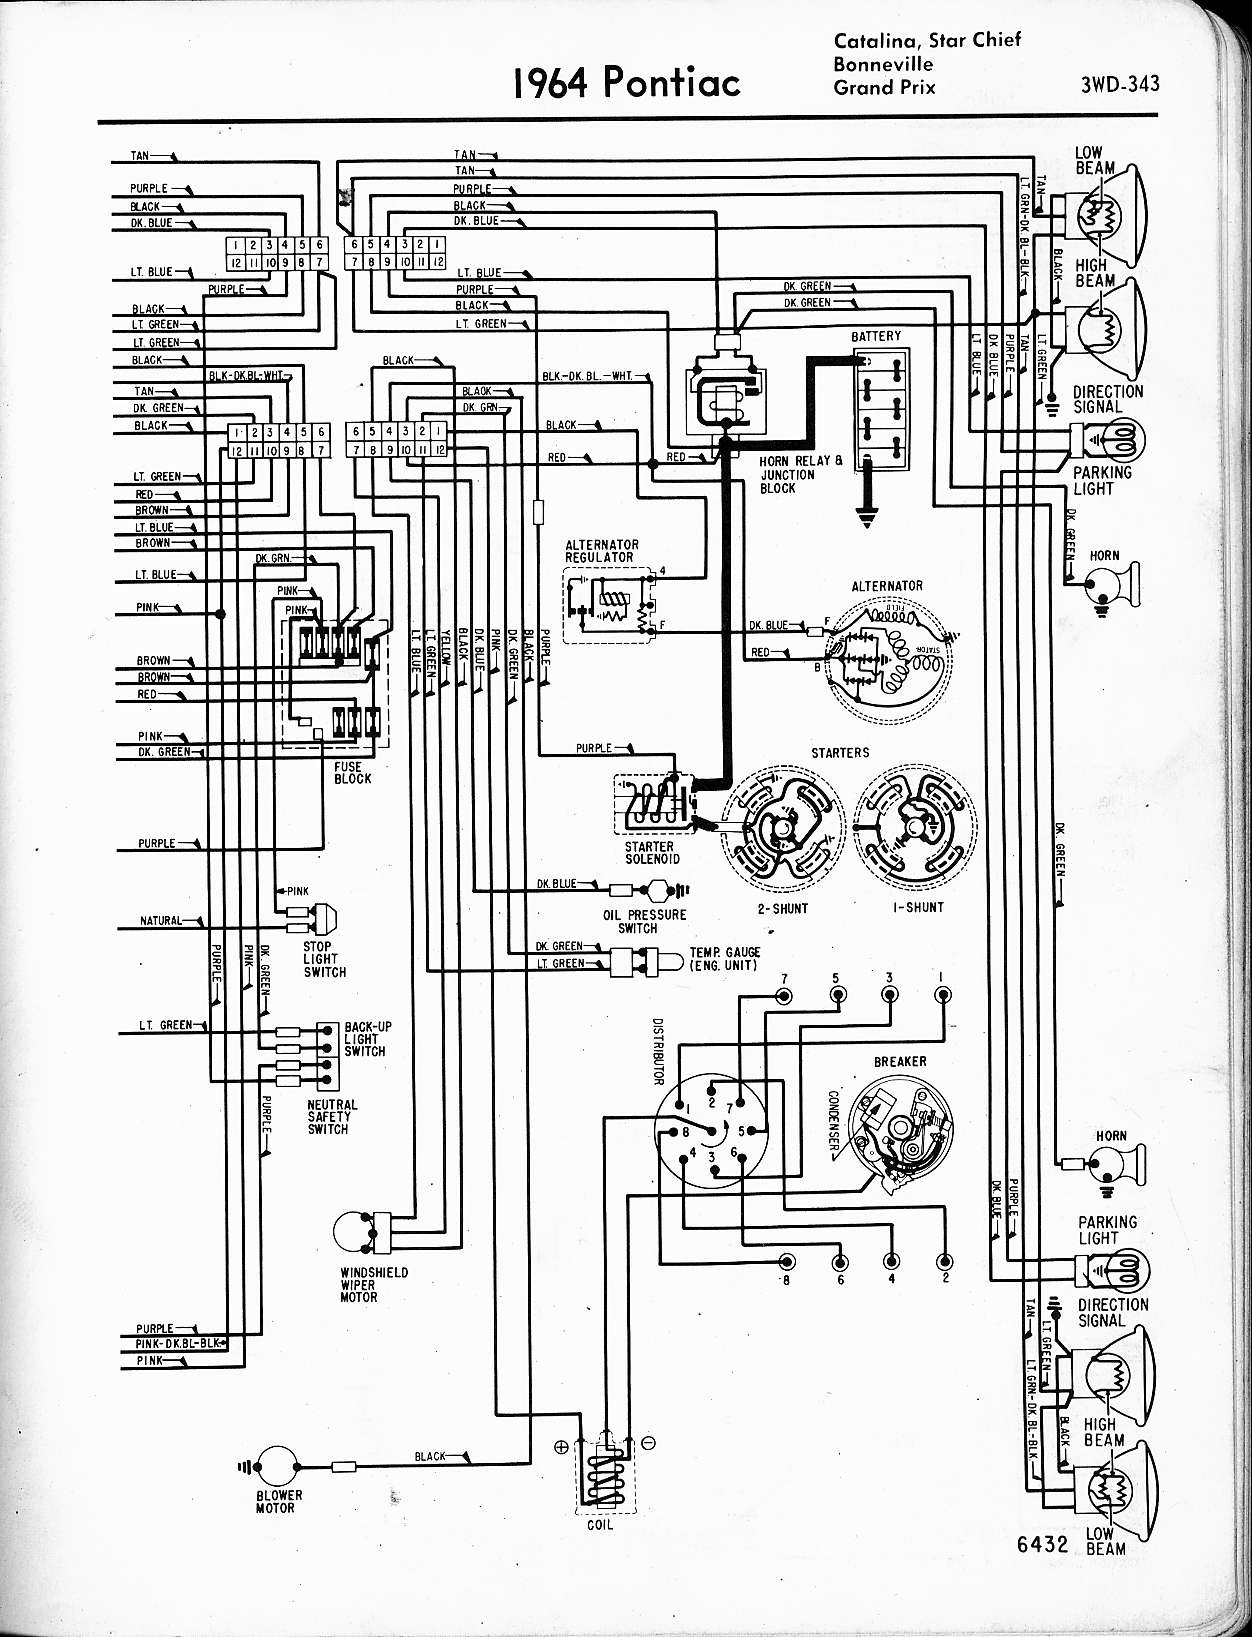 Electrical Wiring Diagram 1967 Pontiac on 1966 mustang rear light wiring diagram